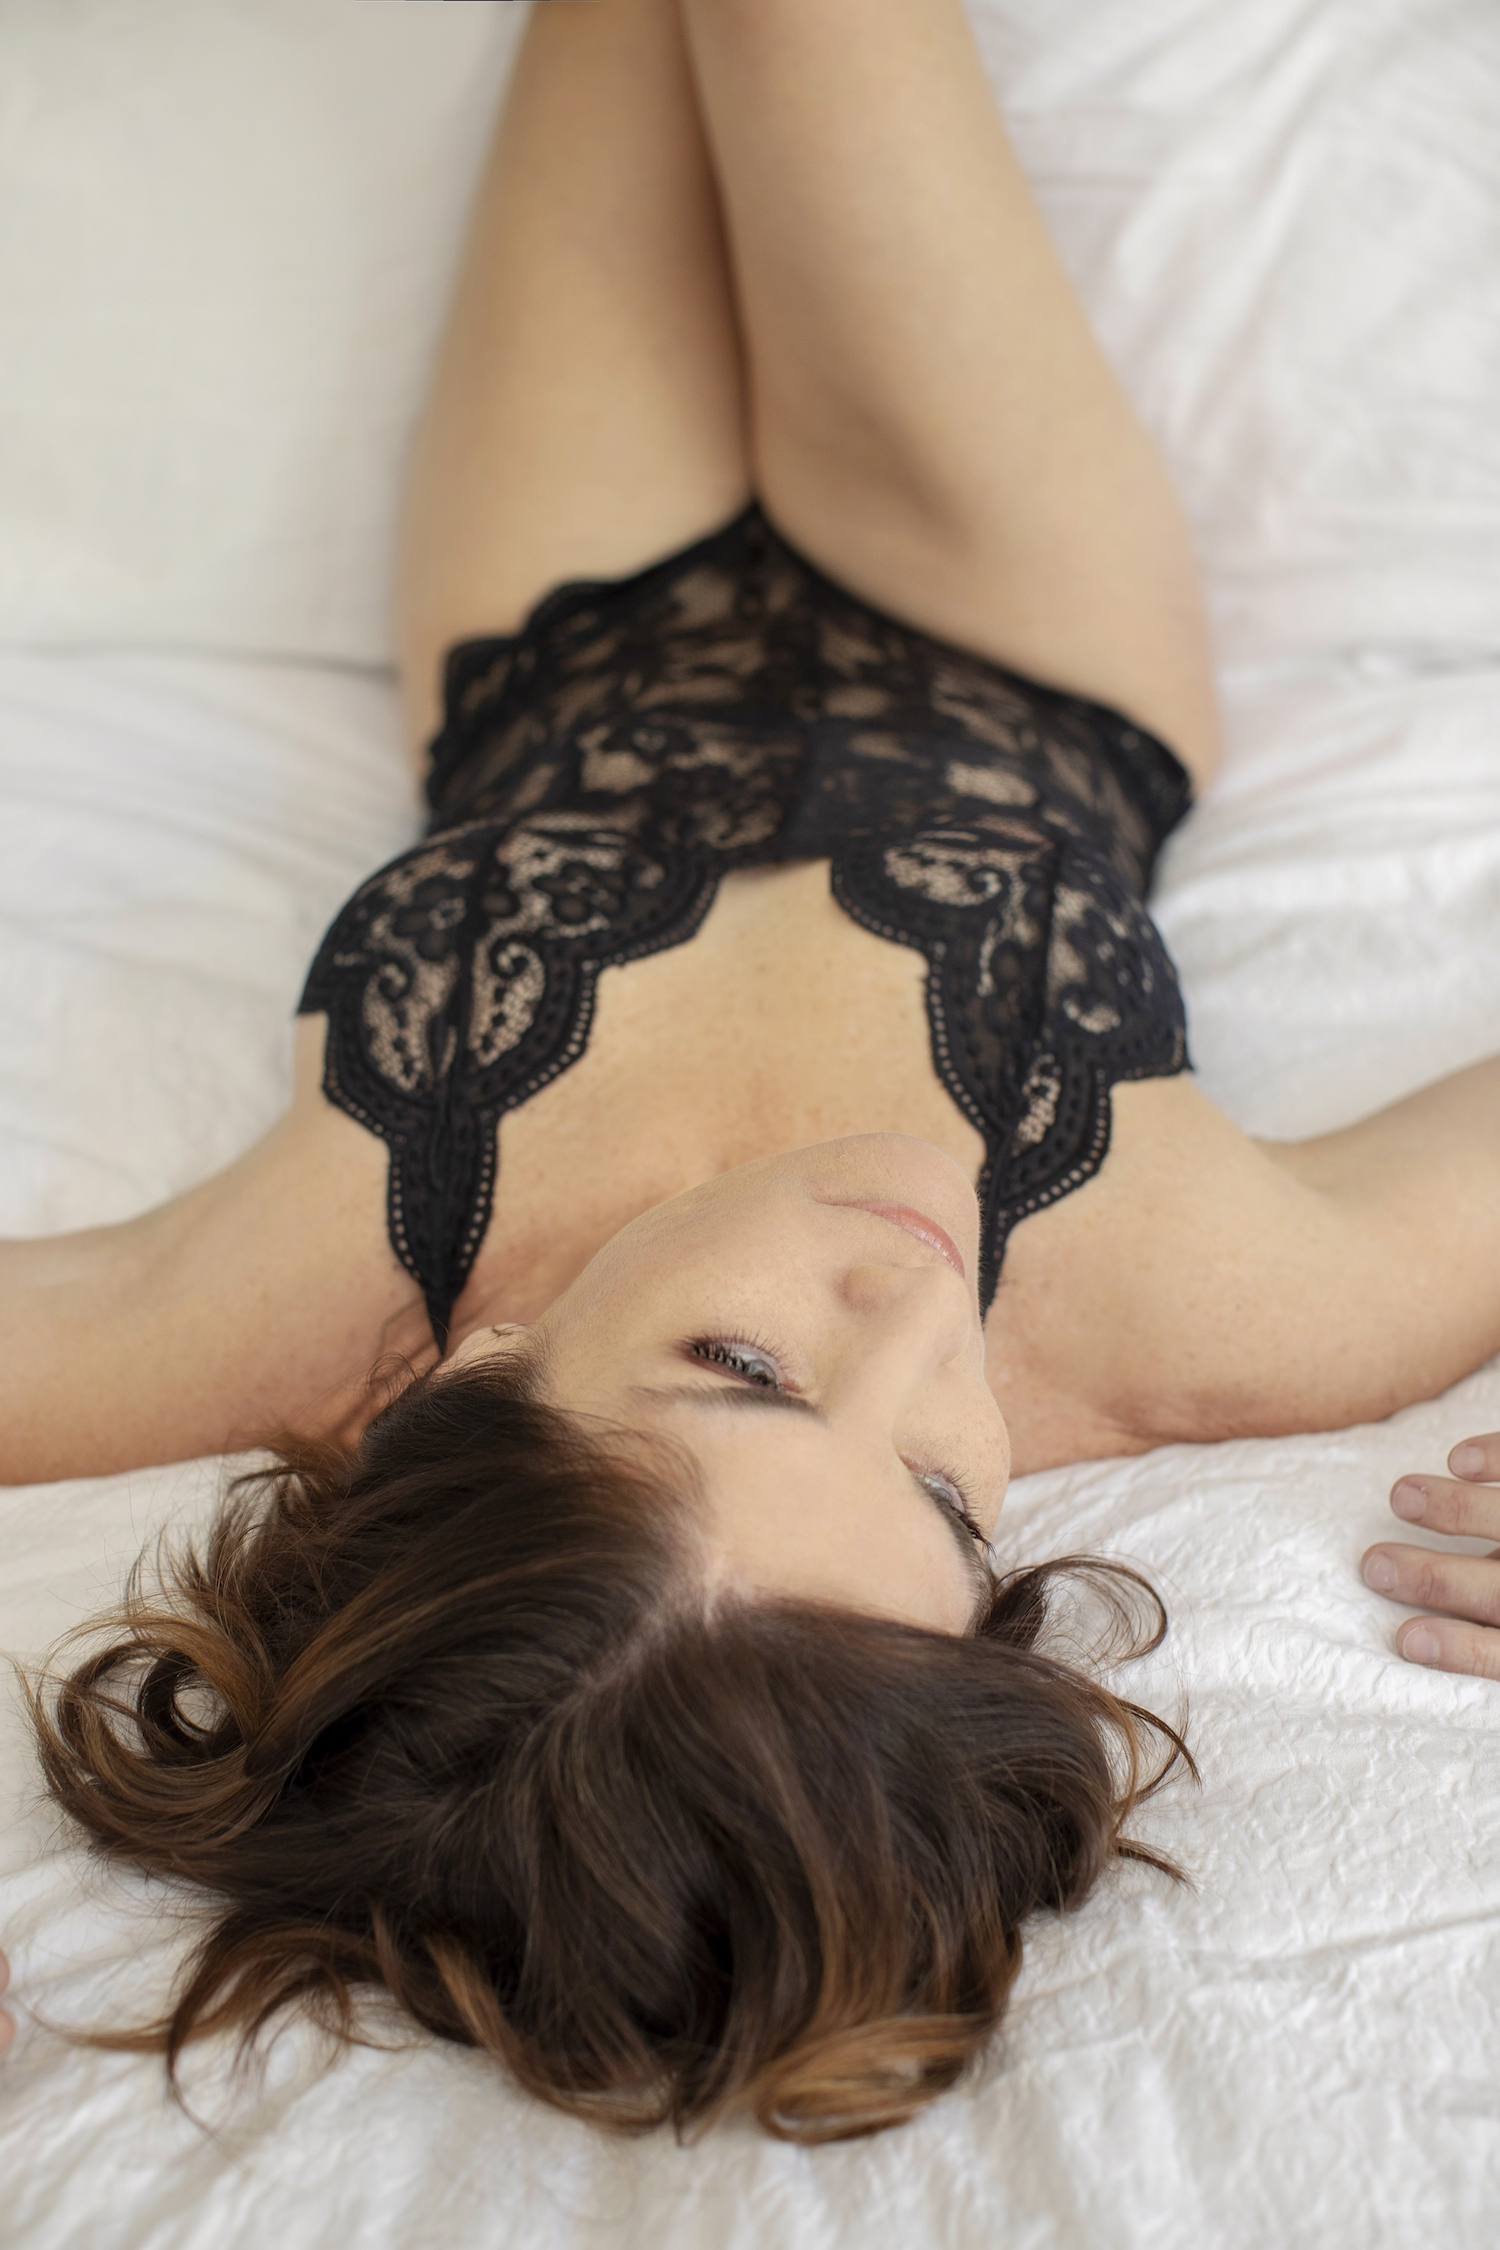 Boudoir style photograph of a woman lying on a bed with black lingerie.